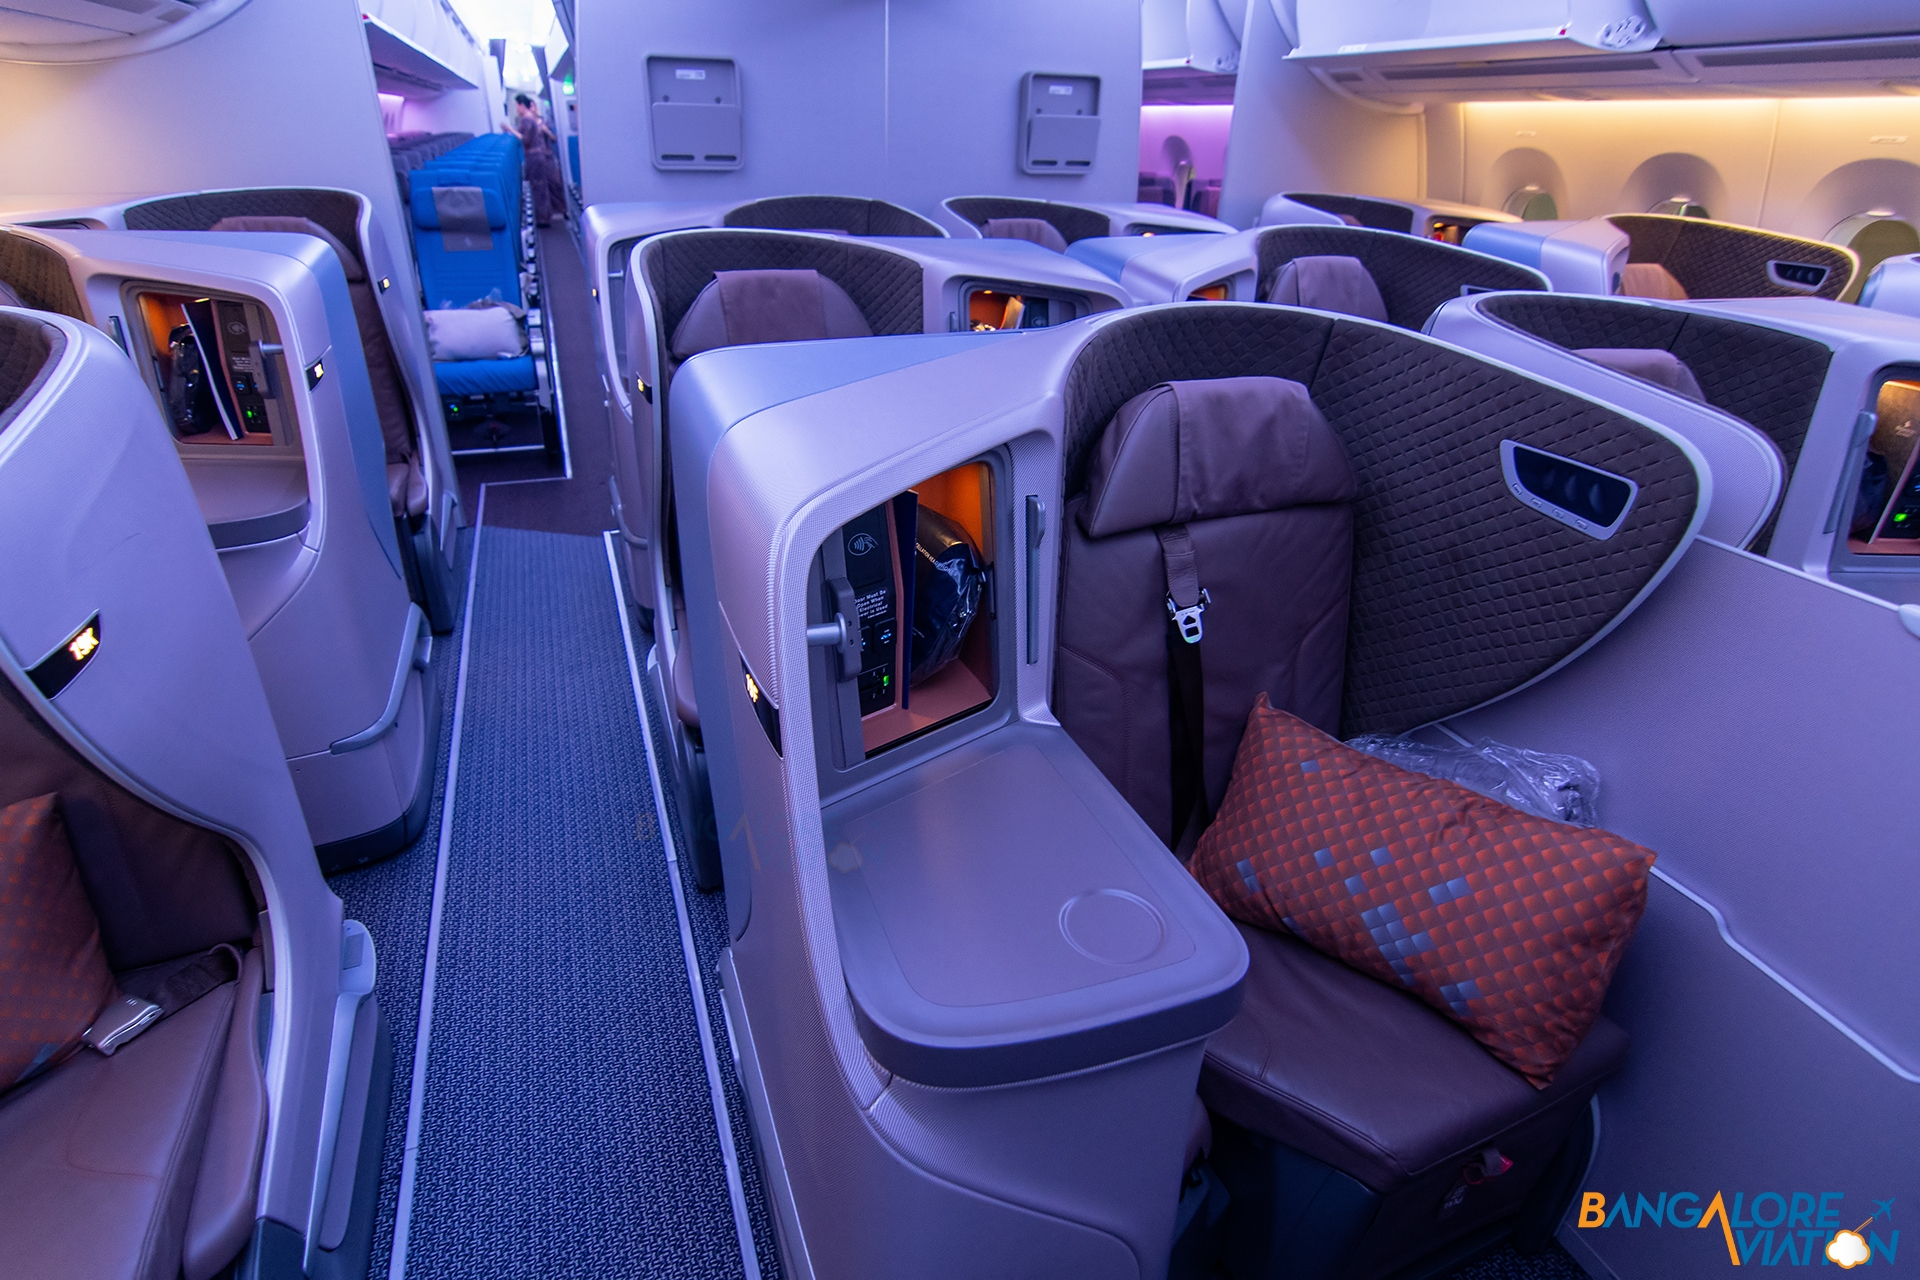 Inflight Review Singapore Airlines Business Class Airbus